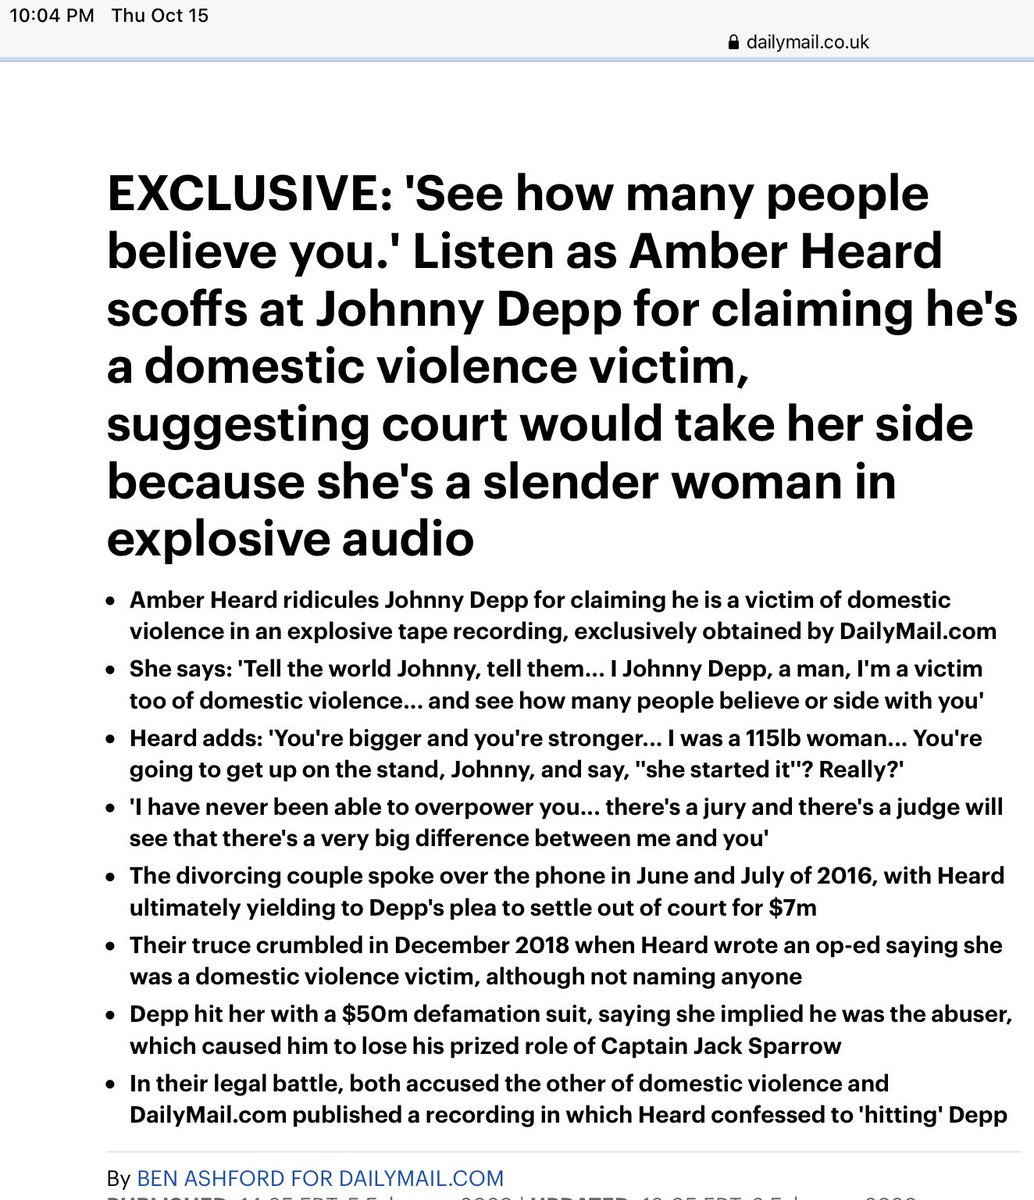 """@Natural_Uaena @Sia """"See how many people believe you.' Listen as Amber Heard scoffs at Johnny Depp for claiming he's a domestic violence victim, suggesting court would take her side because she's a slender woman in explosive audio"""" #justiceforjohnnydepp https://t.co/1SivfnMMzO"""